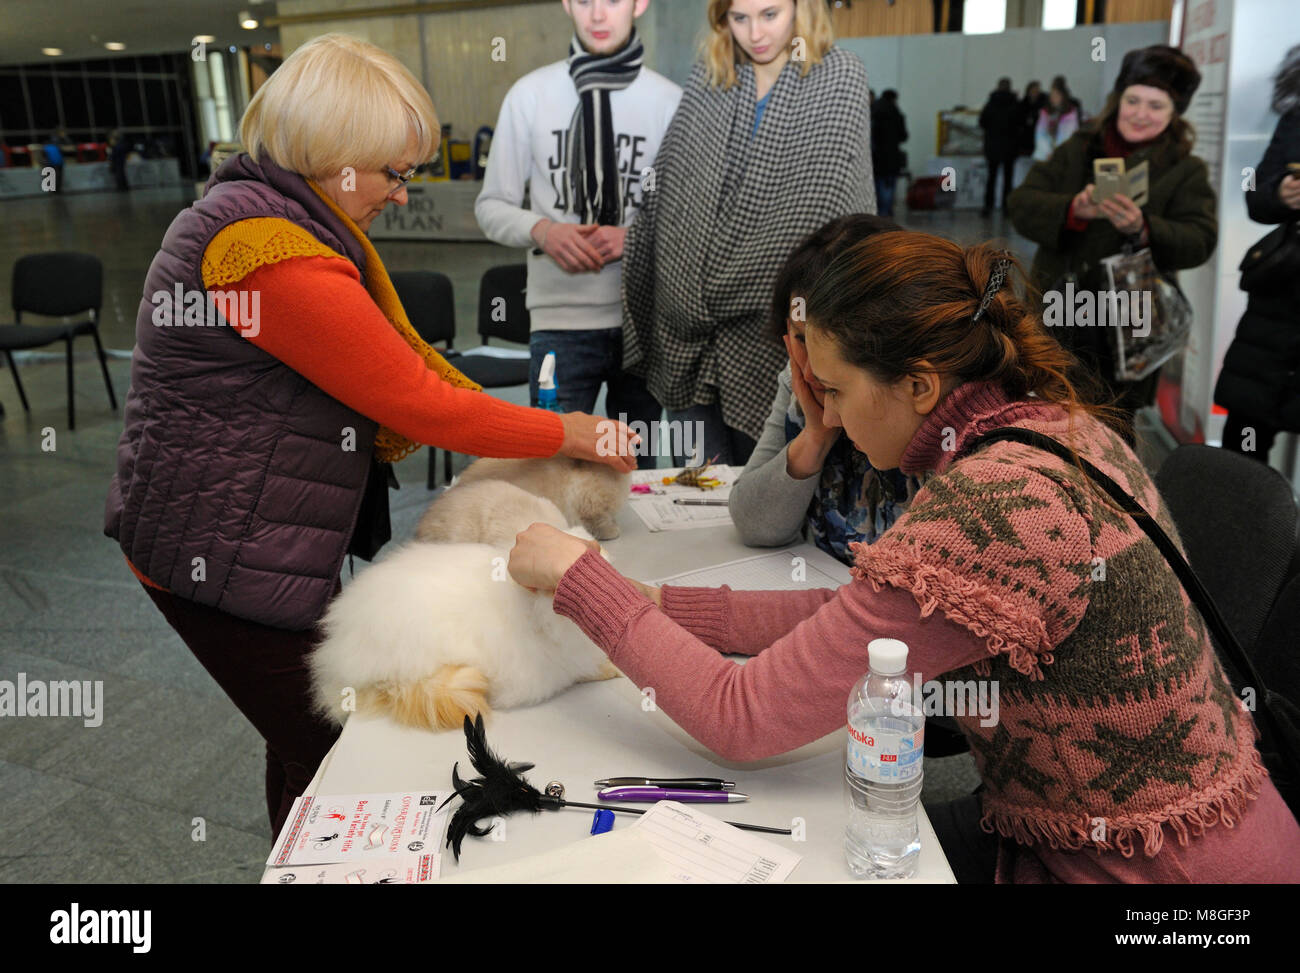 Estimating breed. A pedigreed cat standing on a table, a judge holding it estimating its color and proportions. - Stock Image